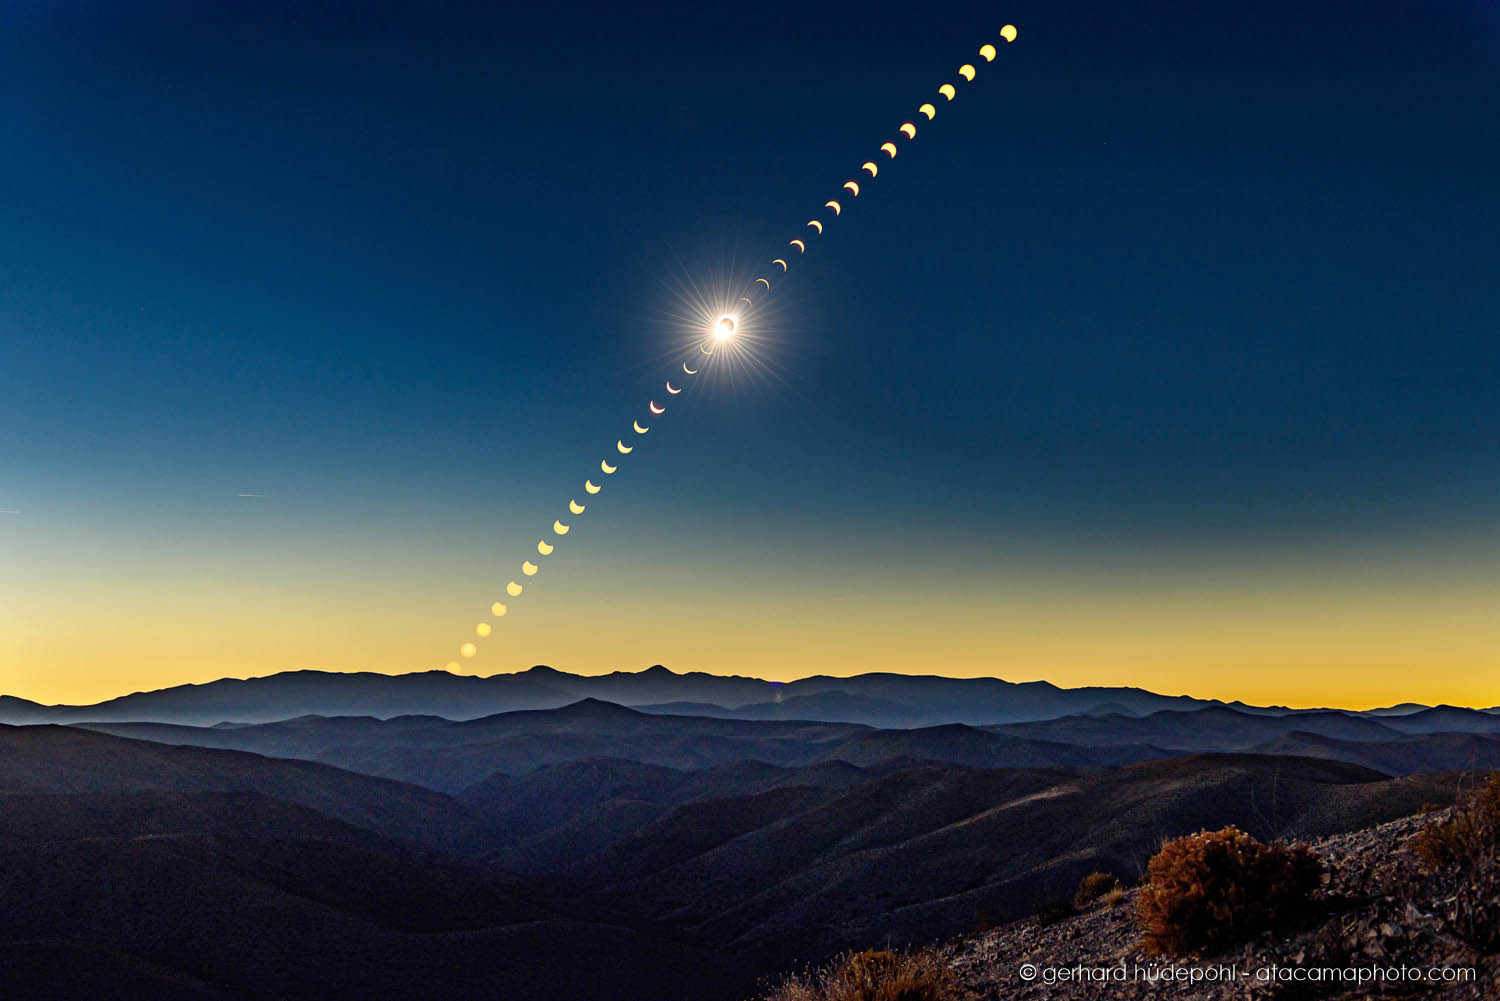 Sequence showing the total solar eclipse in the Atacama region in July 2019